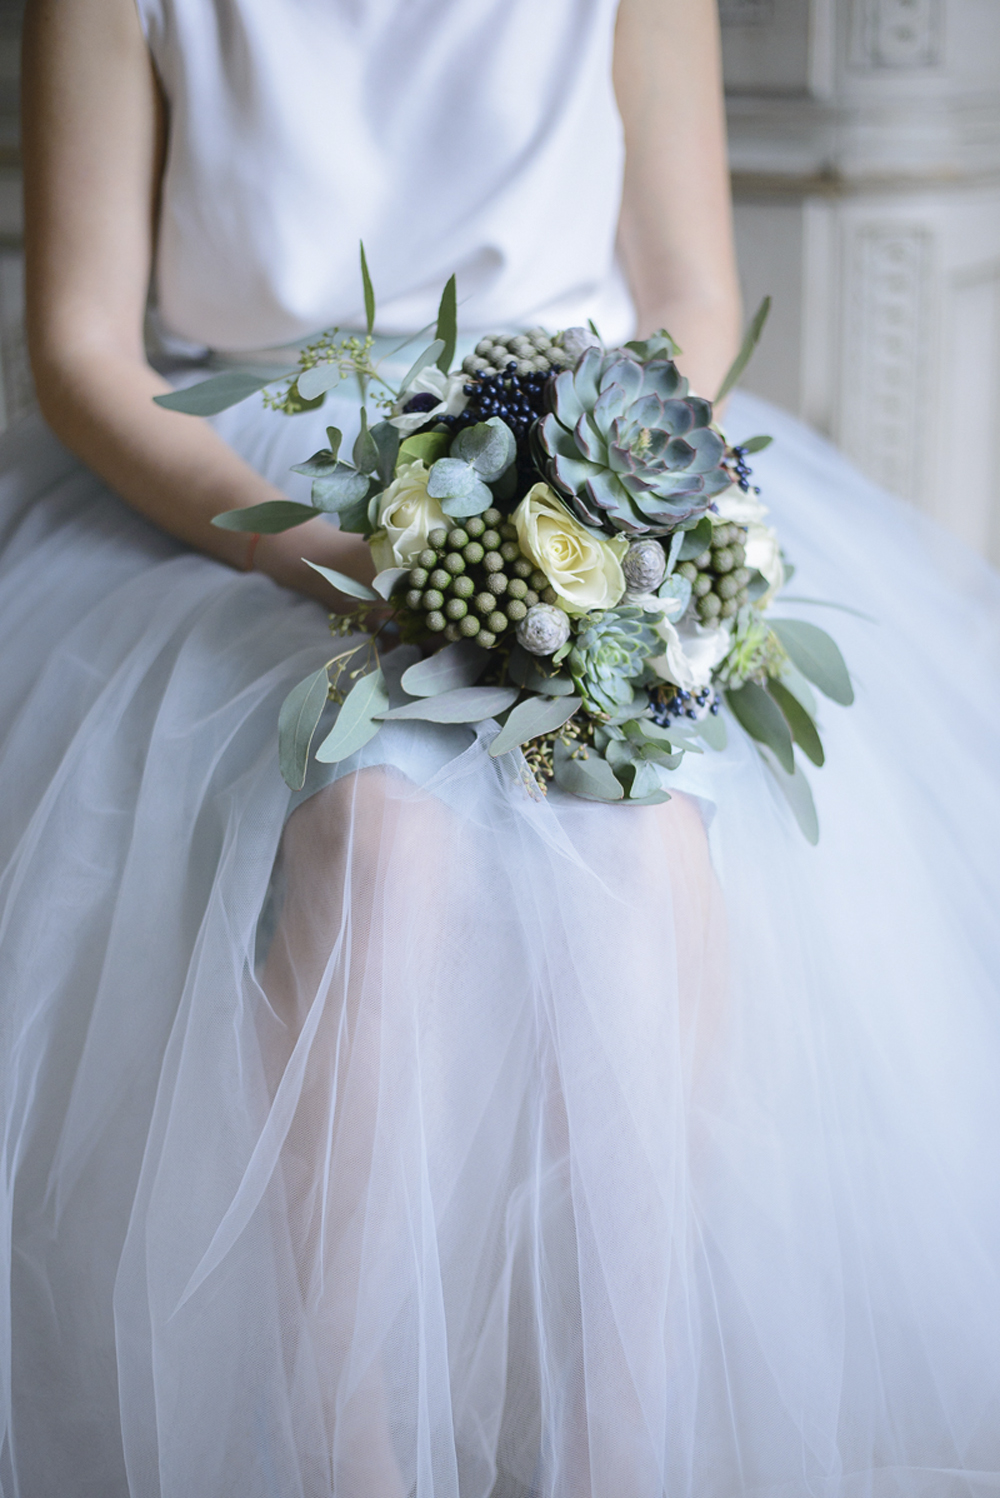 Wedding bouquet inspiration in blue grey and silver at Schloss Laudon Vienna Austria by Barbara Wenz Photography